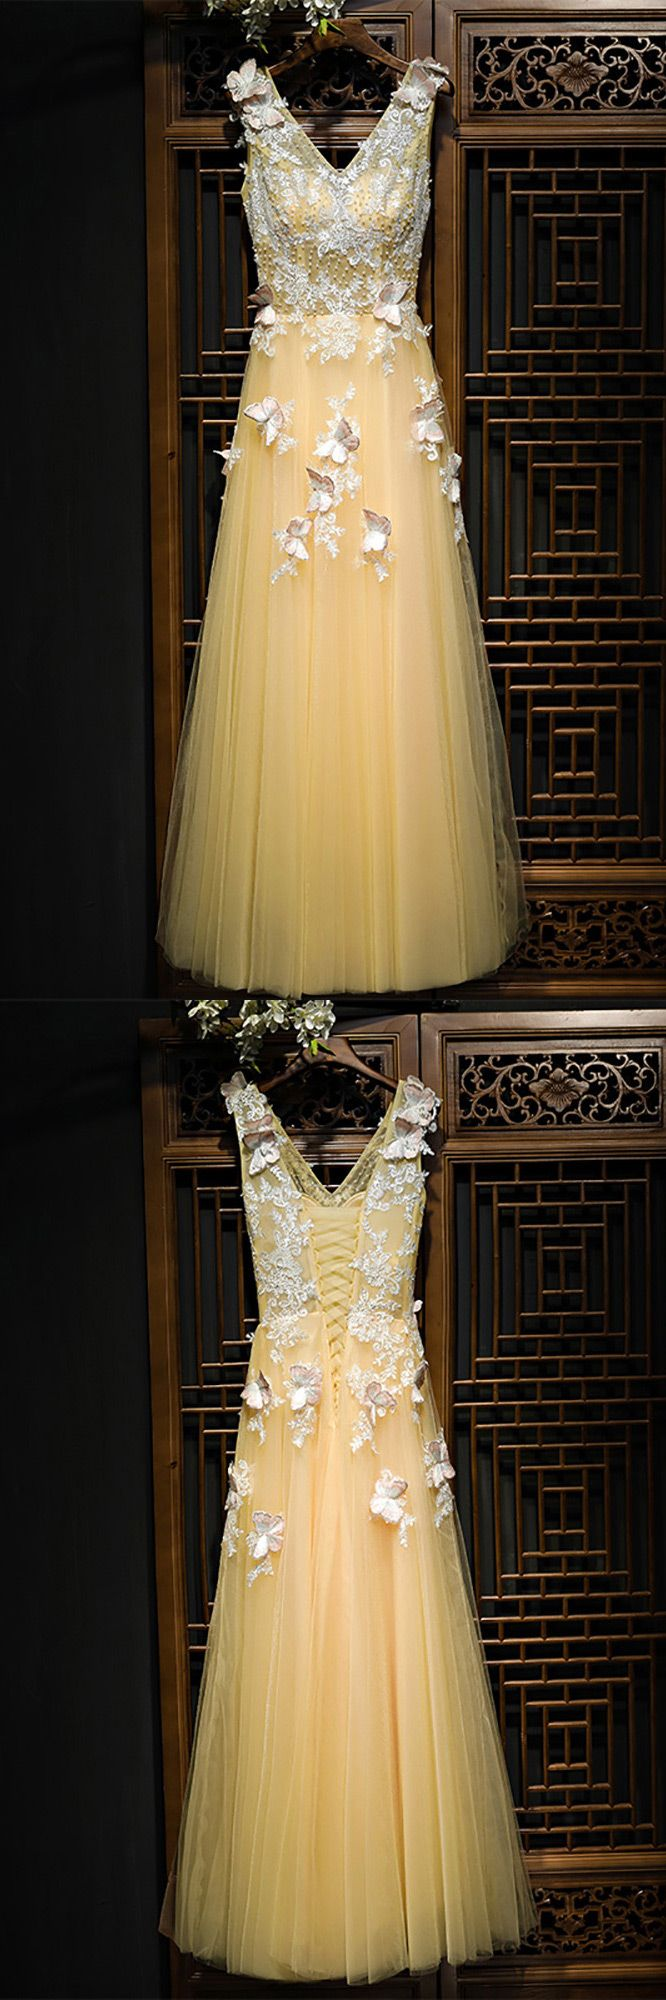 Only $118, Prom Dresses Flowy Long Champagne Tulle Prom Dress With Lace Butterflies #MYX18116 at #GemGrace. View more special Prom Dresses now? GemGrace is a solution for those who want to buy delicate gowns with affordable prices, a solution for those who have unique ideas about their gowns. 2018 new arrivals, shop now to get $10 off!